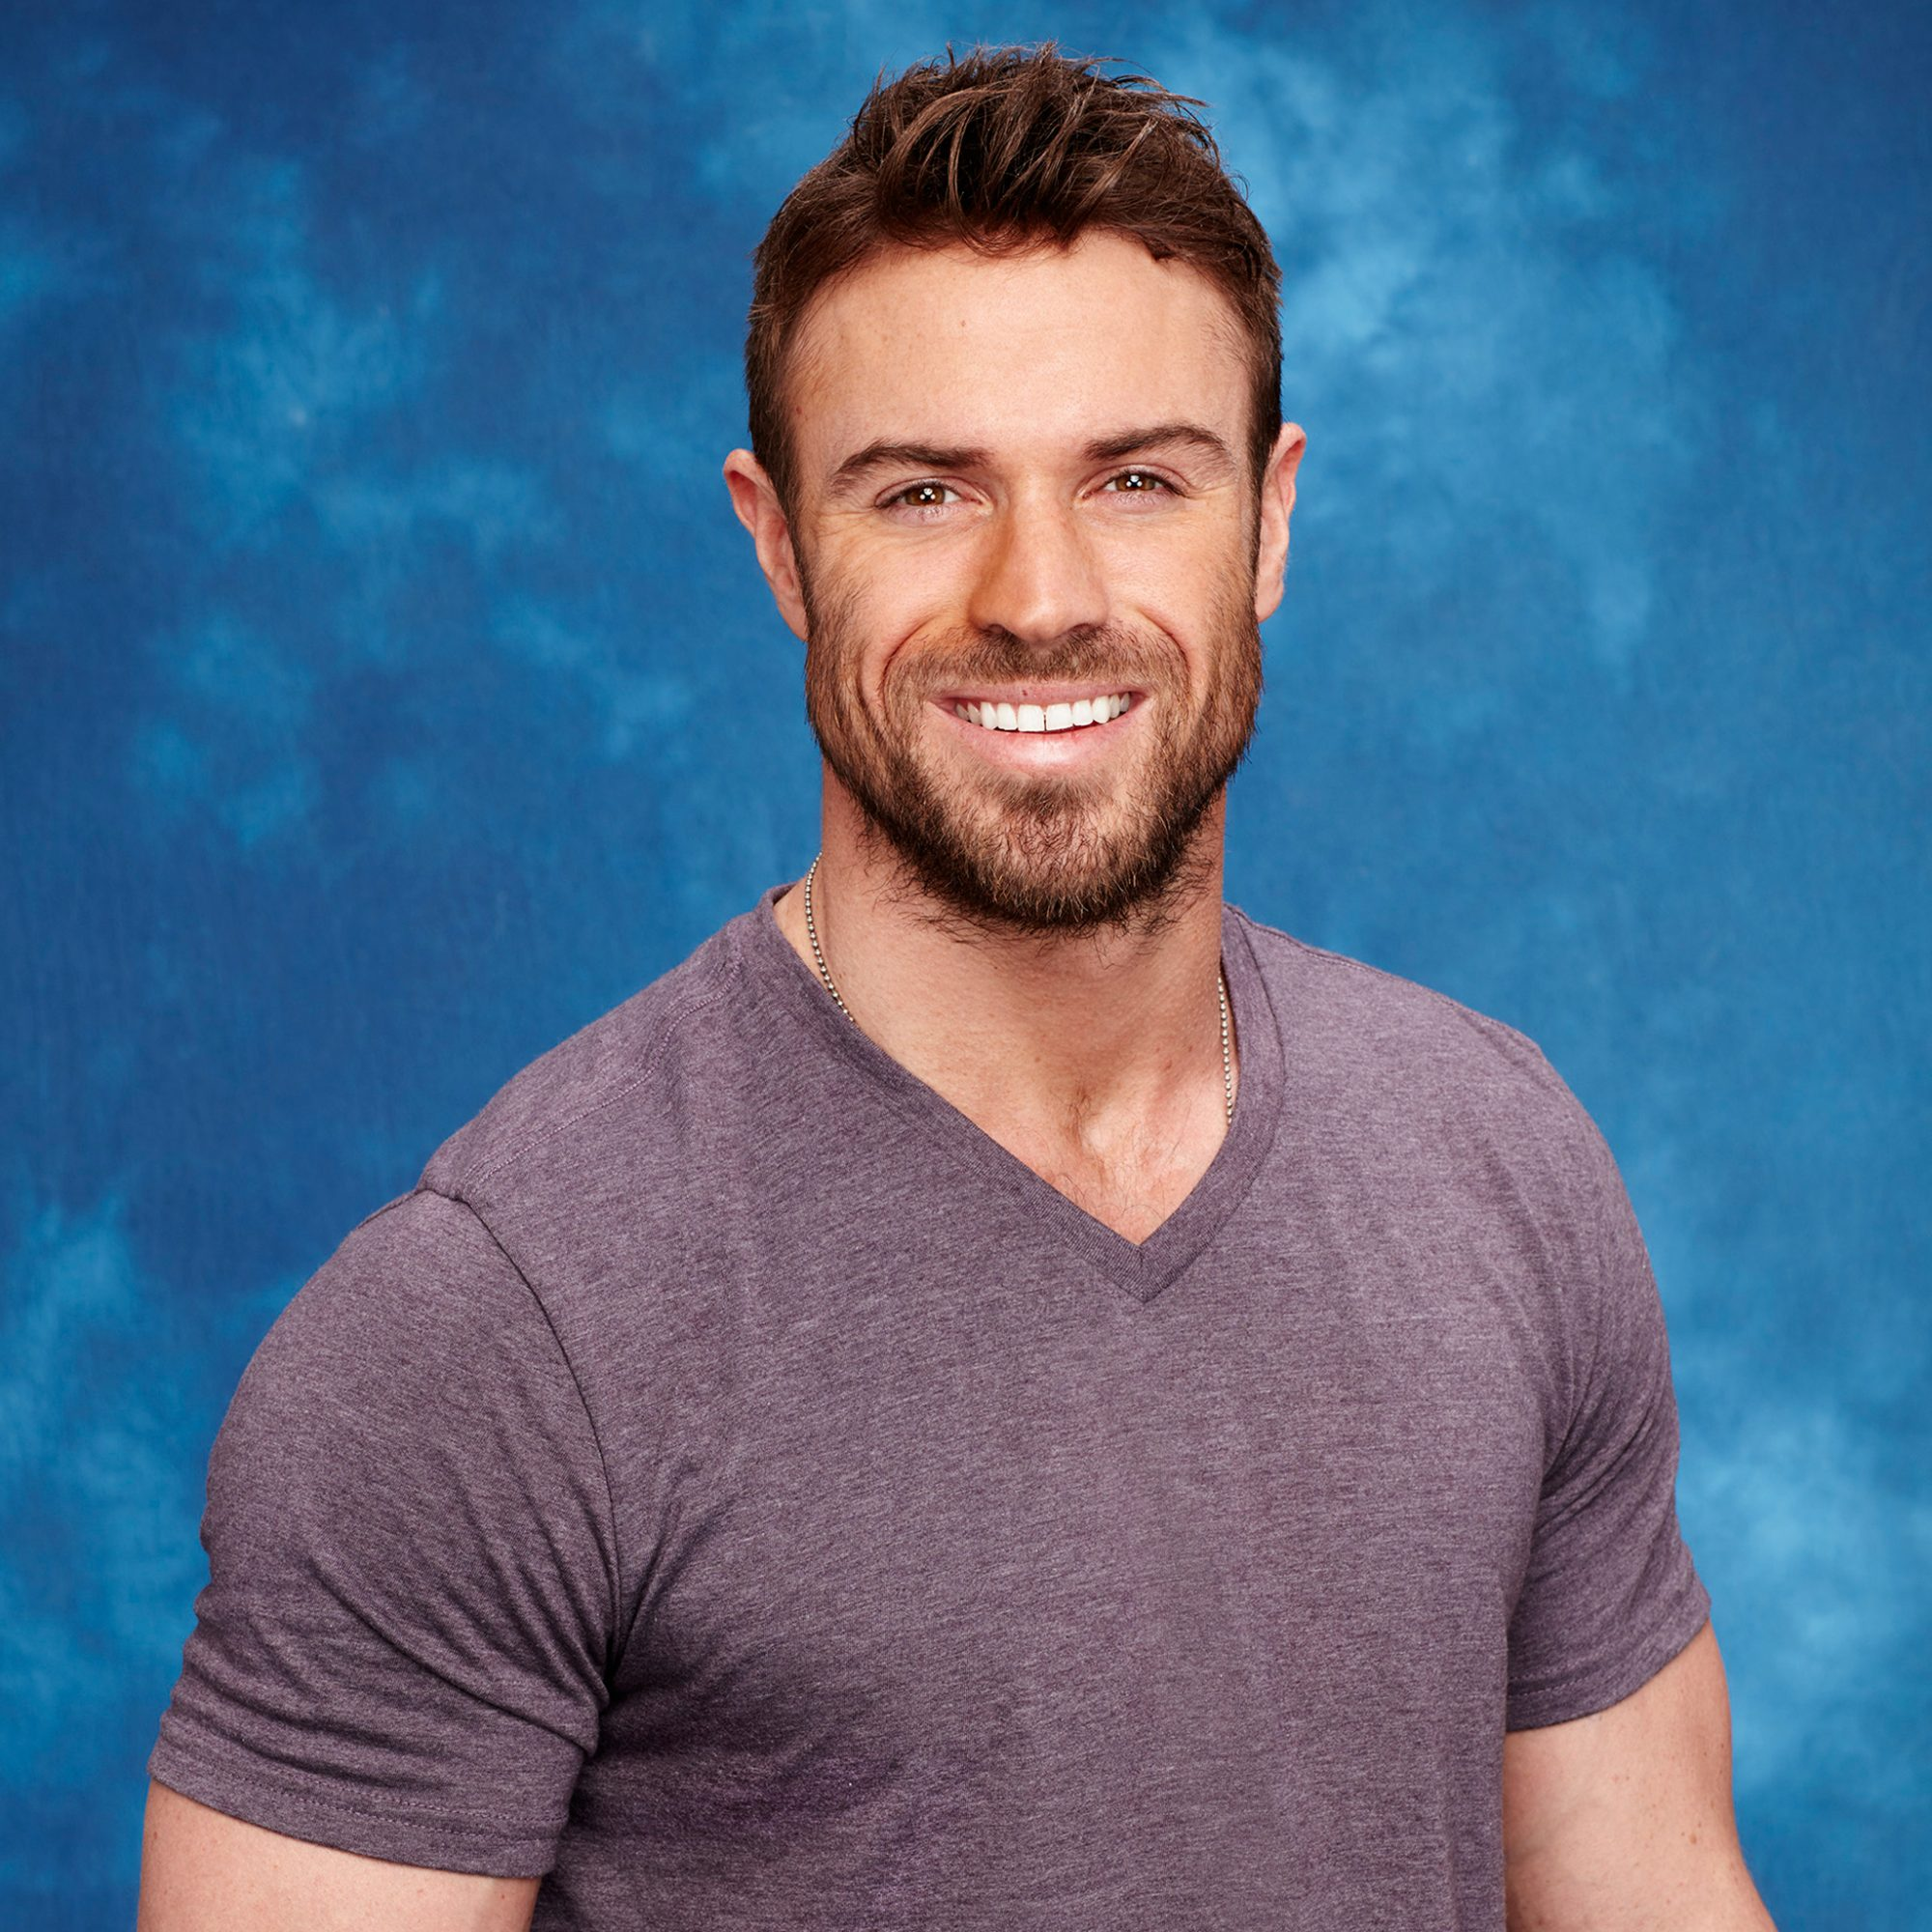 Bachelorette, Chad Johnson